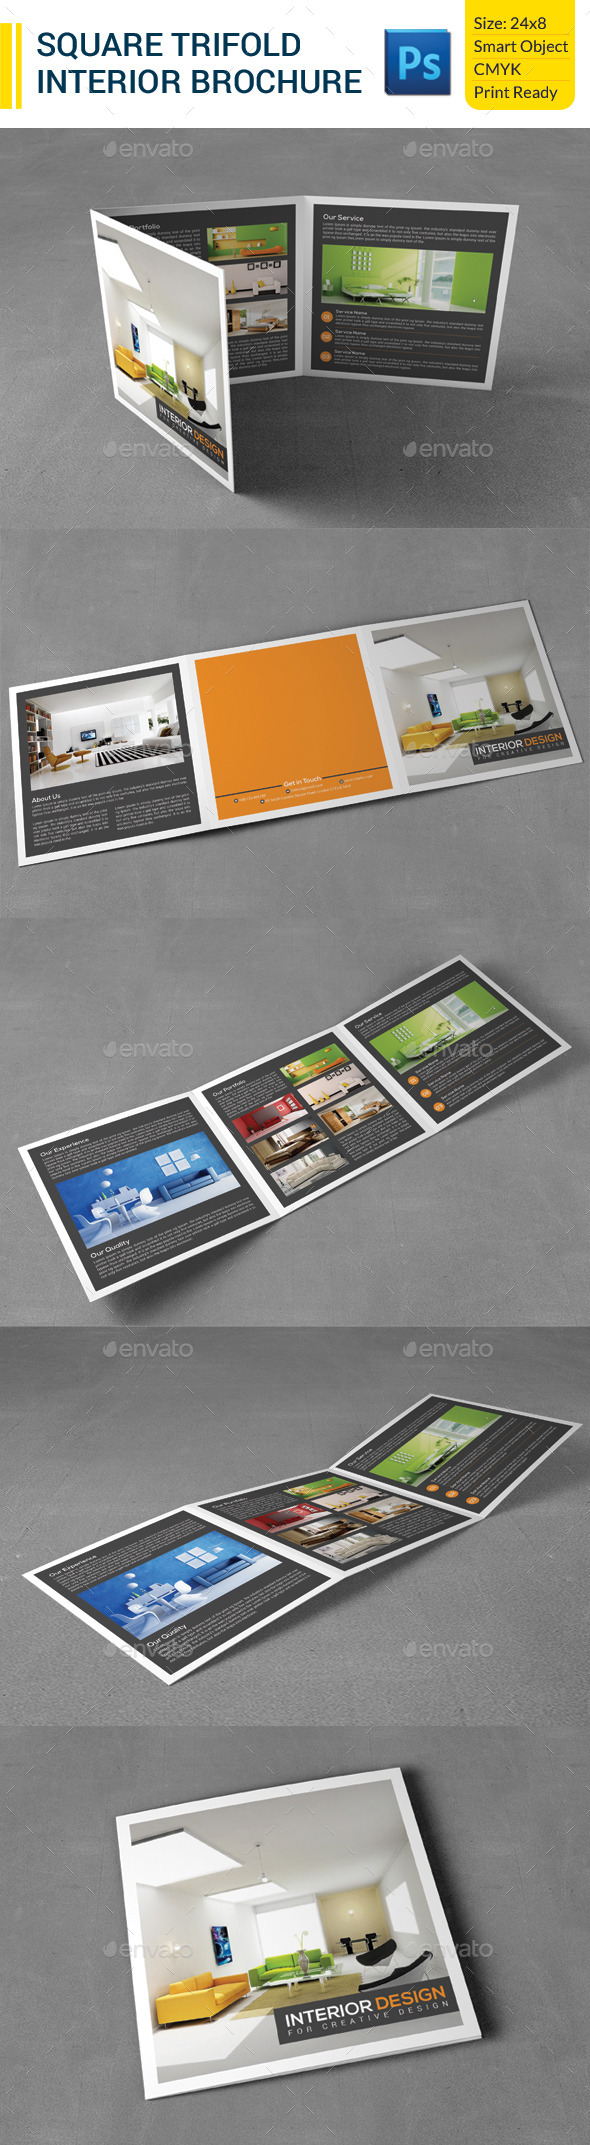 GraphicRiver Square Trifold Interior Brochure 9630003